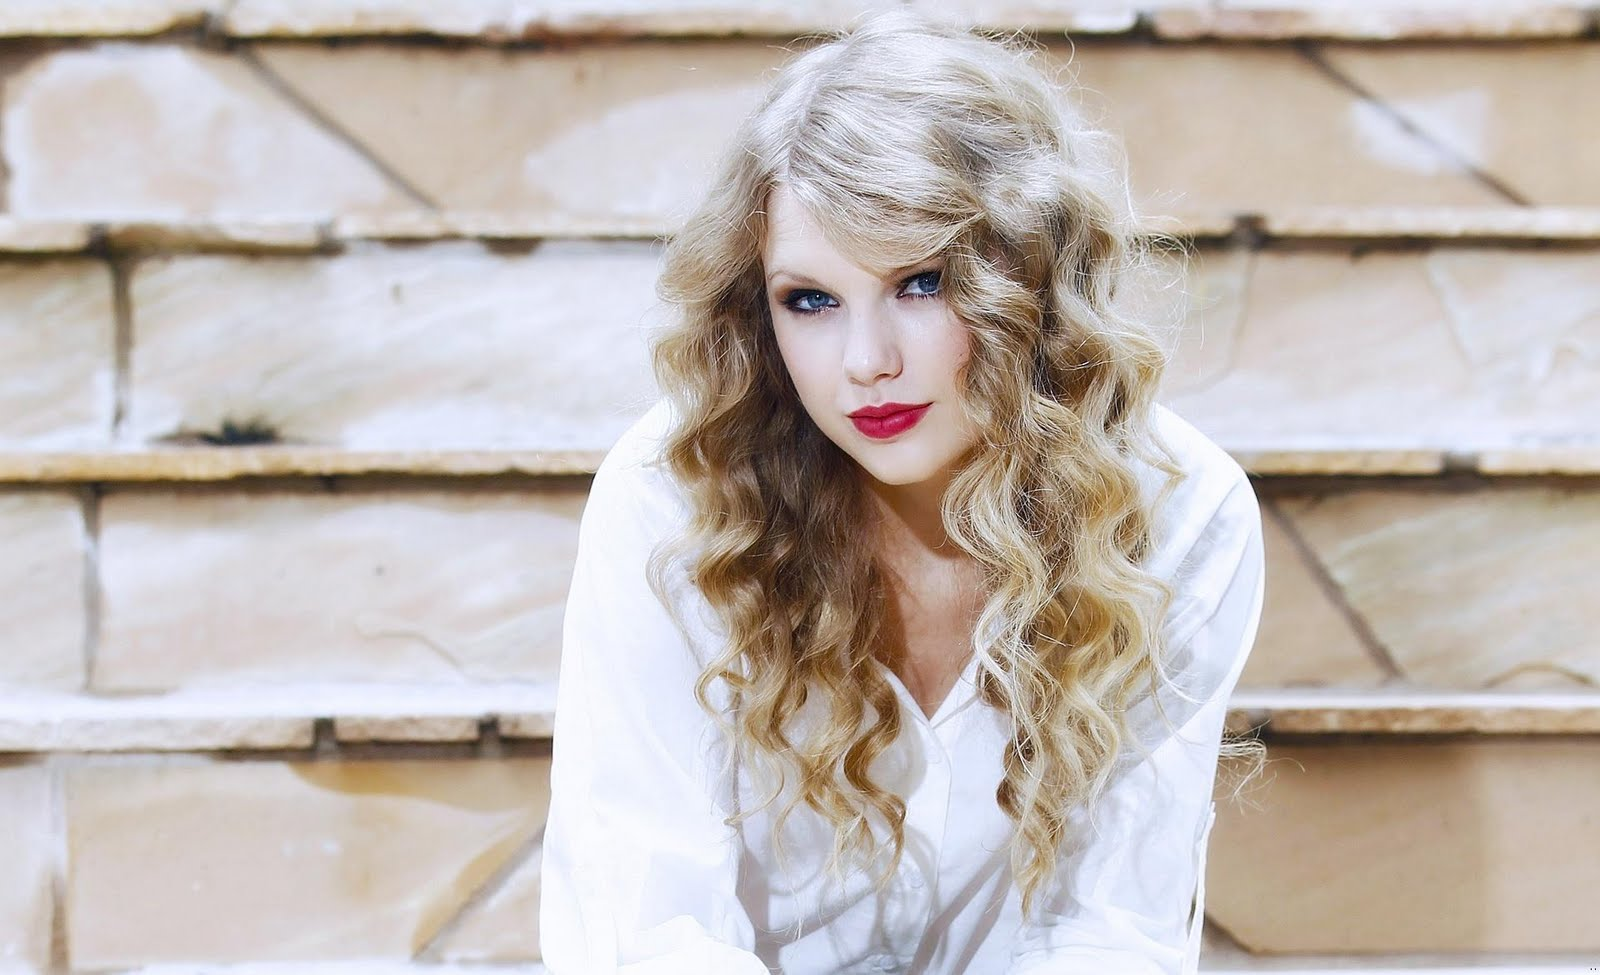 Taylor Swift Beautiful Images: Taylor Swift Beautiful Singer Wallpapers